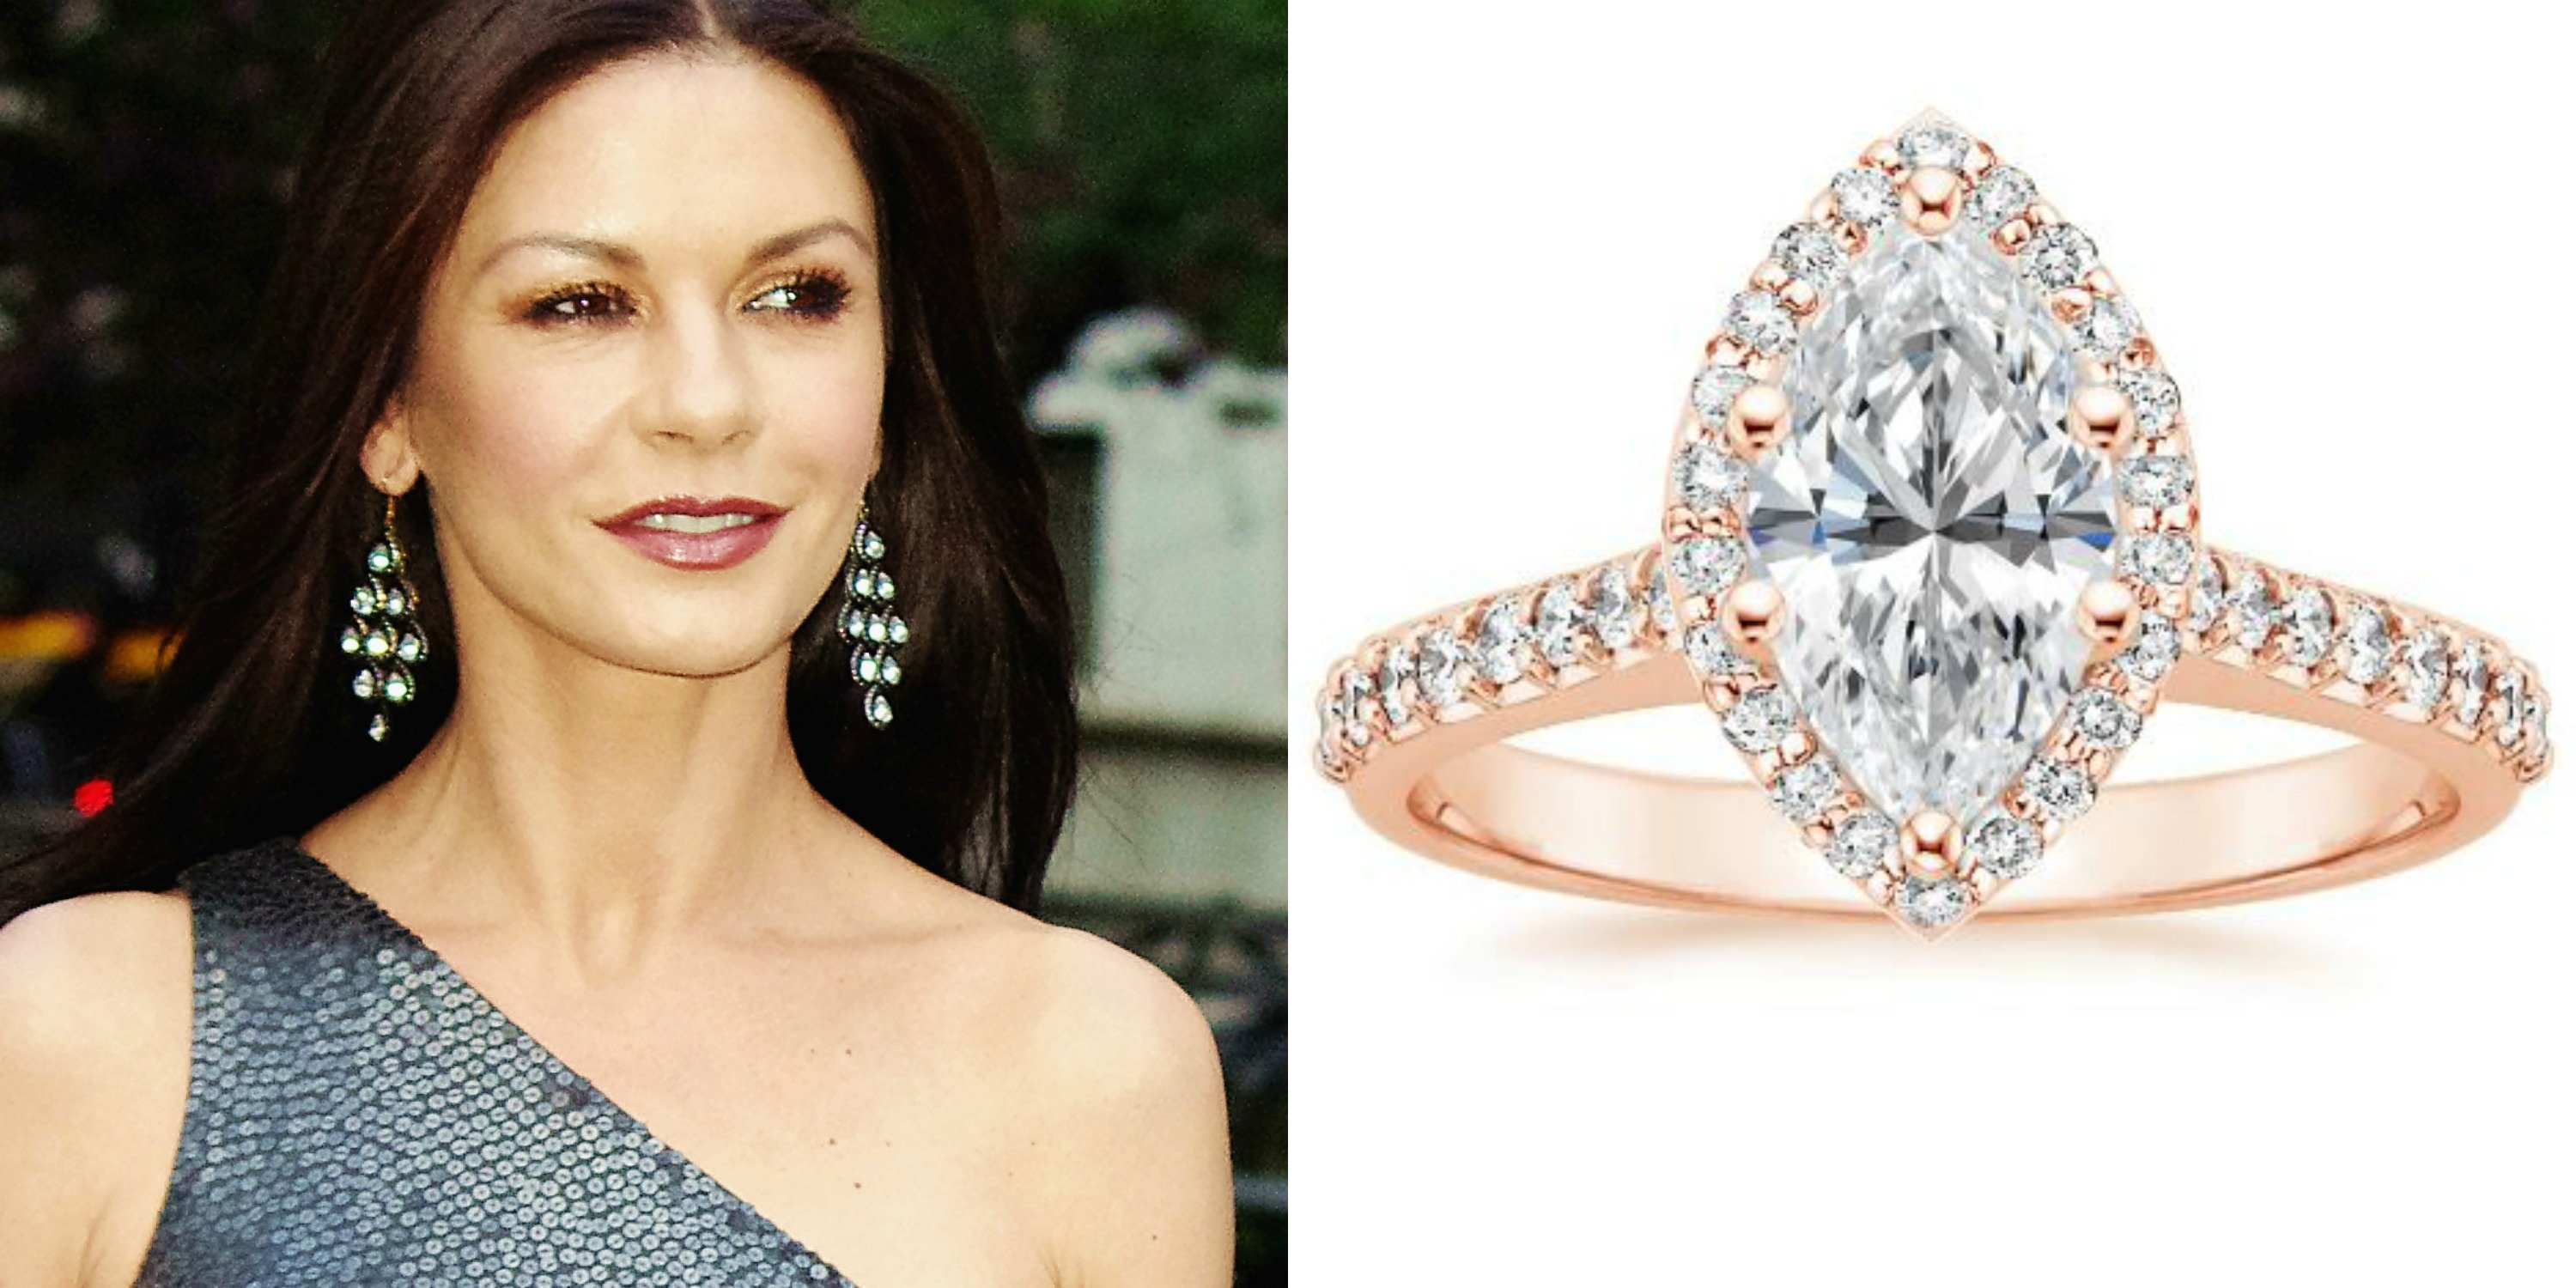 wedding celebrities engagement rings r celeb purseforum page threads celebrity